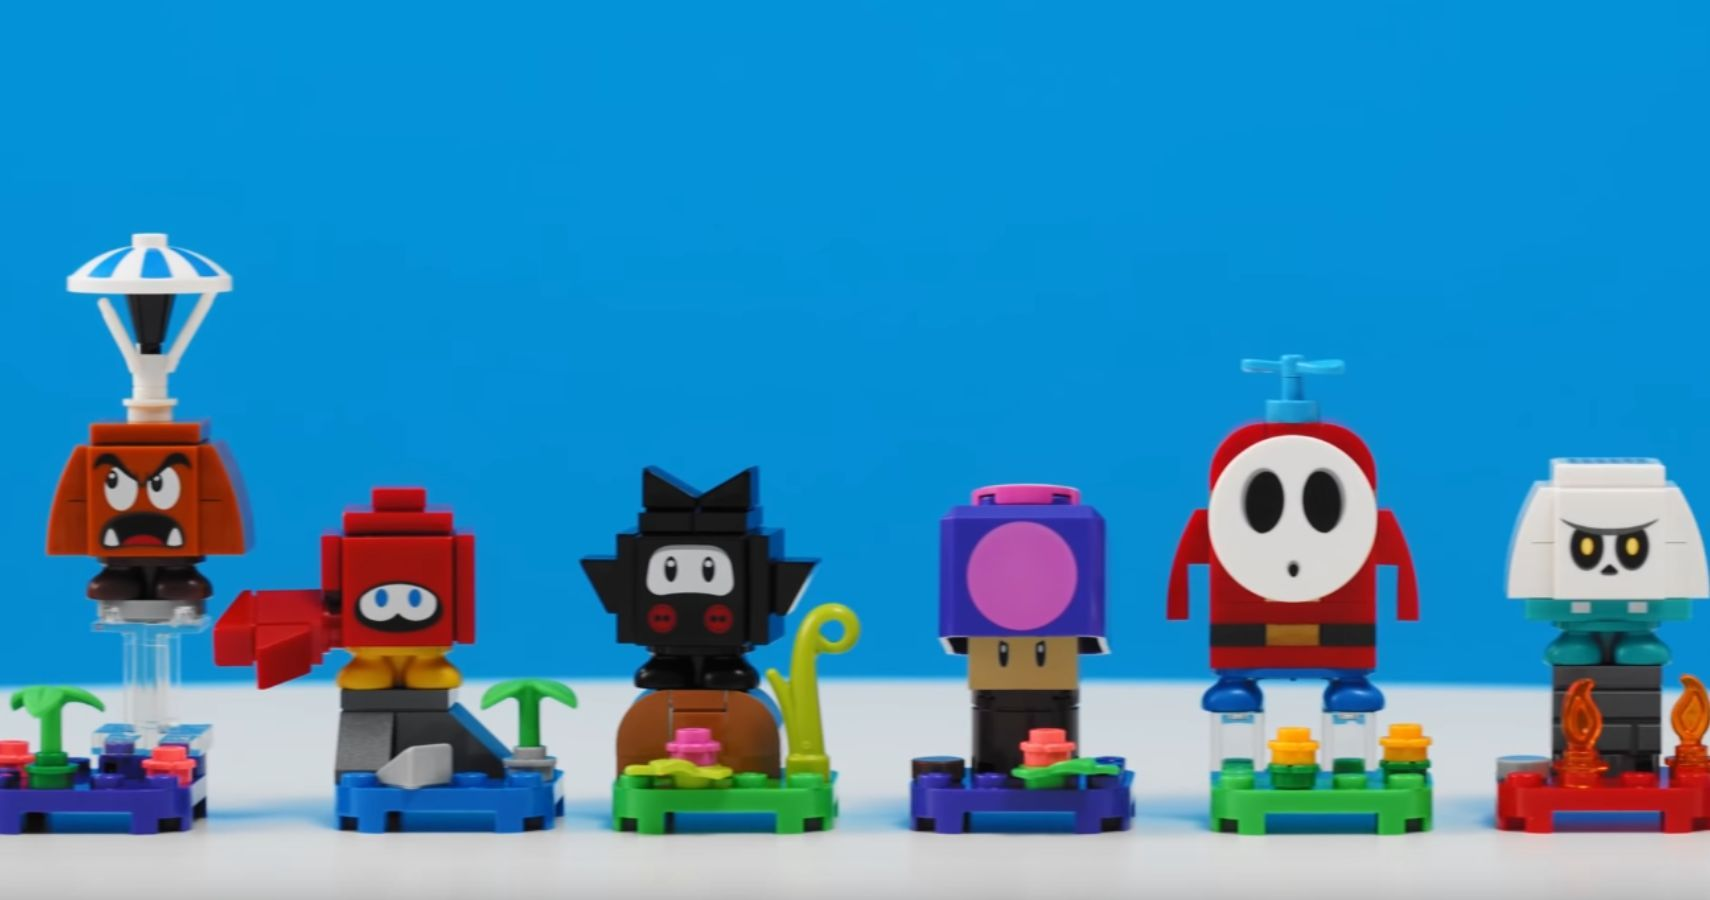 Lego Debuts Super Mario Series 2 Expansion Sets, Including Shy Guy, Chain Chomps, and Tanooki Mario